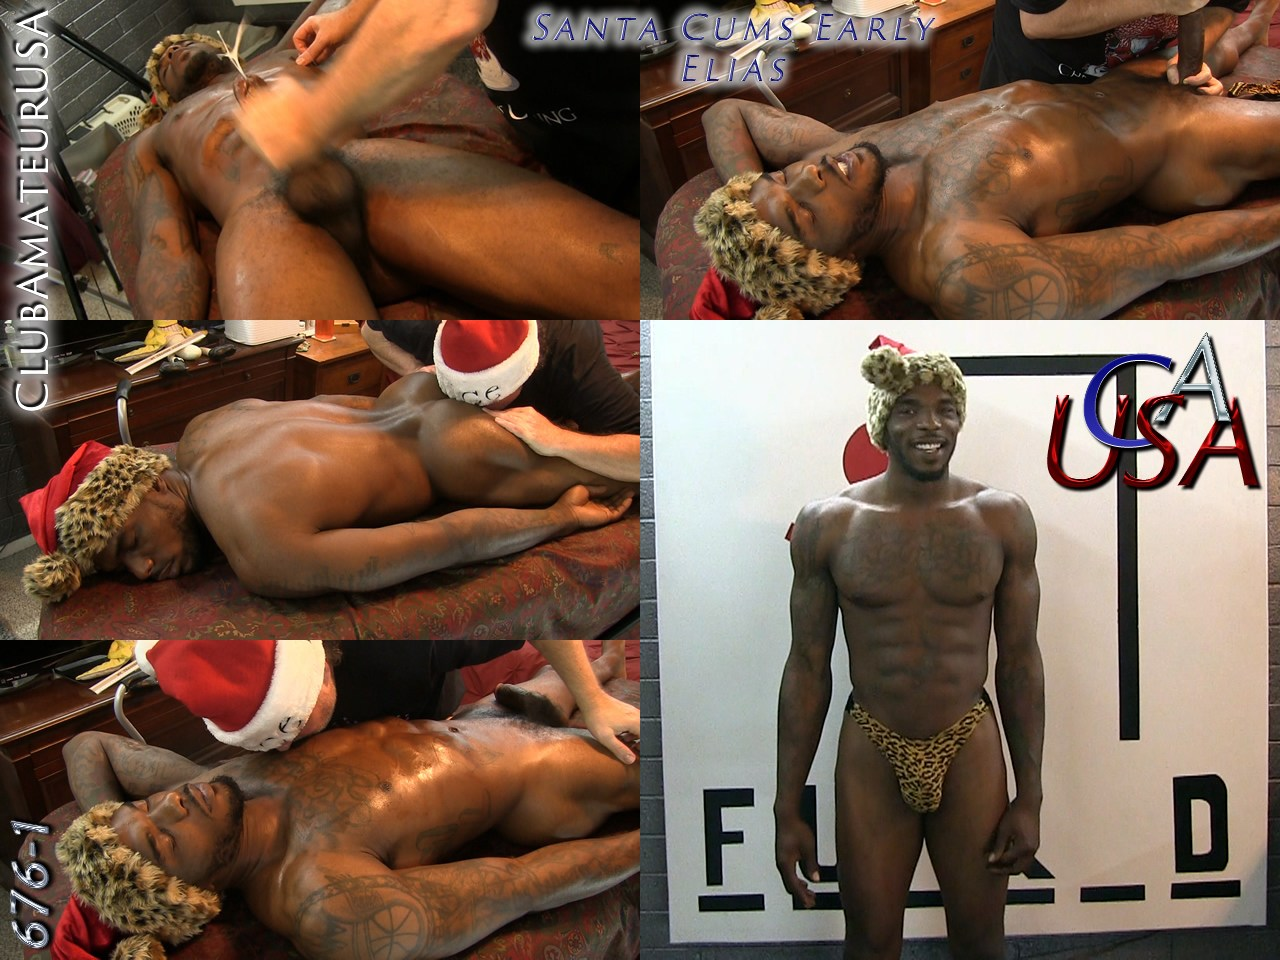 Download or Stream Santa Cums Early - Elias - 1 of 2 - Click Here Now